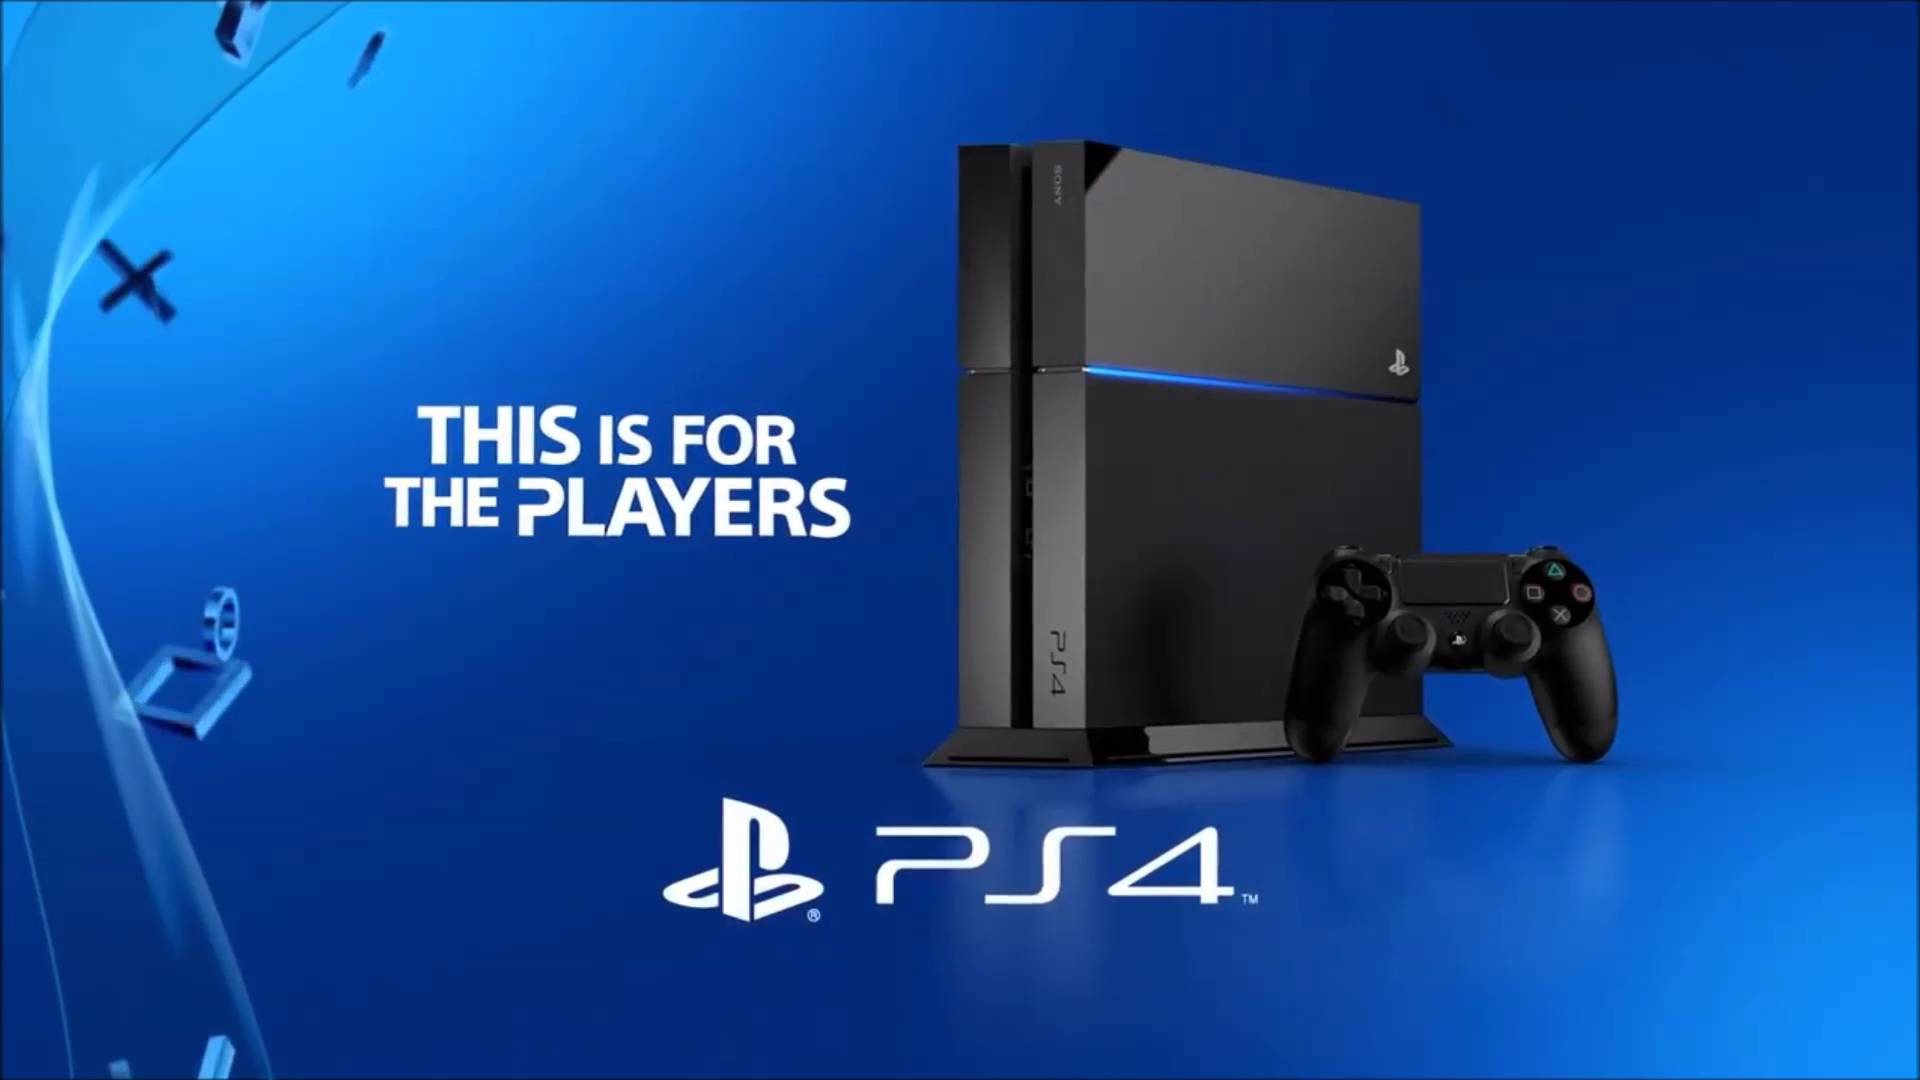 PS4 is still riding high.